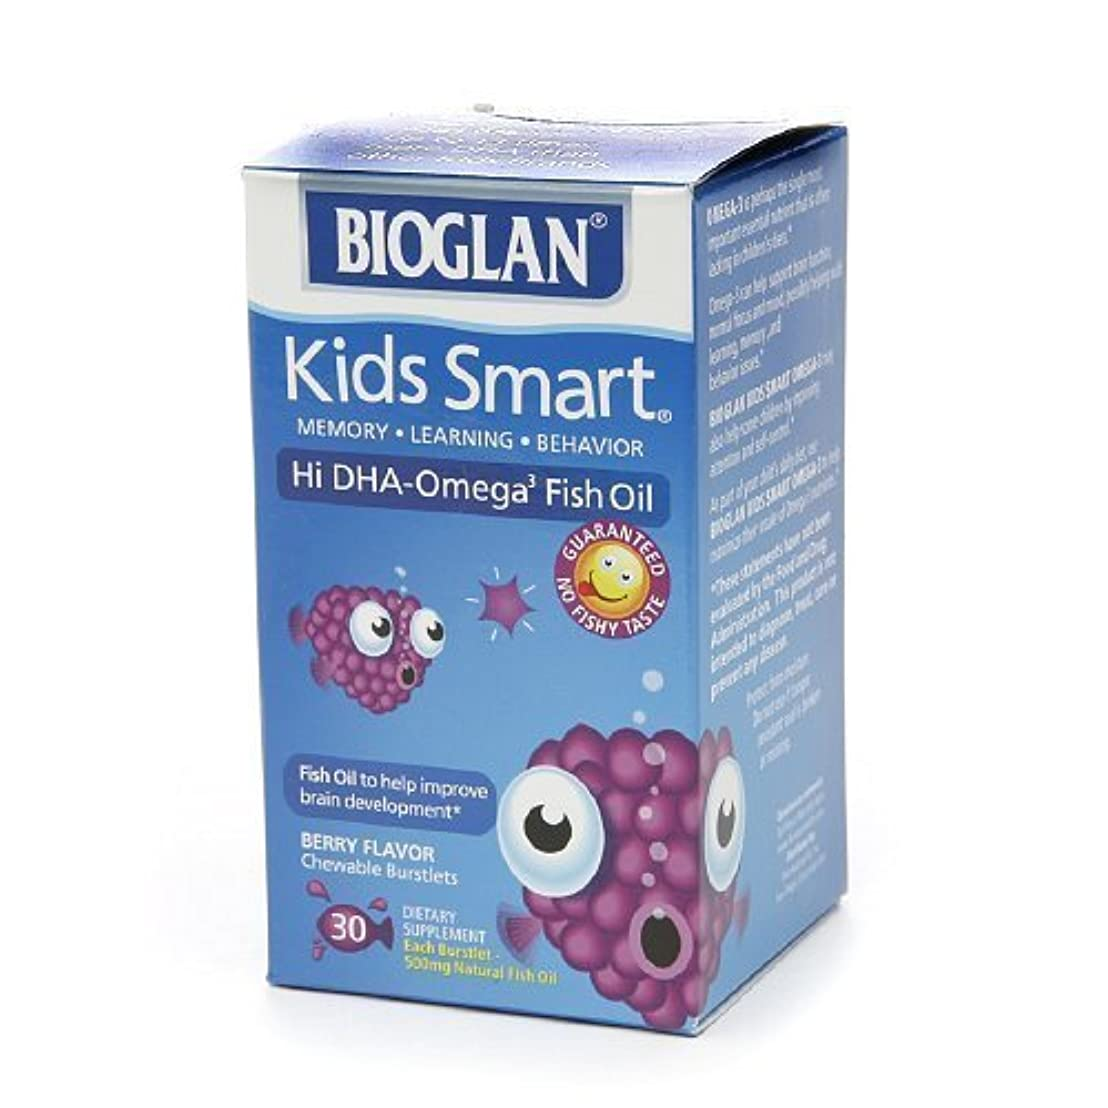 抽出開拓者序文BioGlan Kids Smart Hi DHA Omega-3 Fish Oil, Chewable Burstlets, Berry--30 ea-Product ID DRU-318828_1 by bioglan...